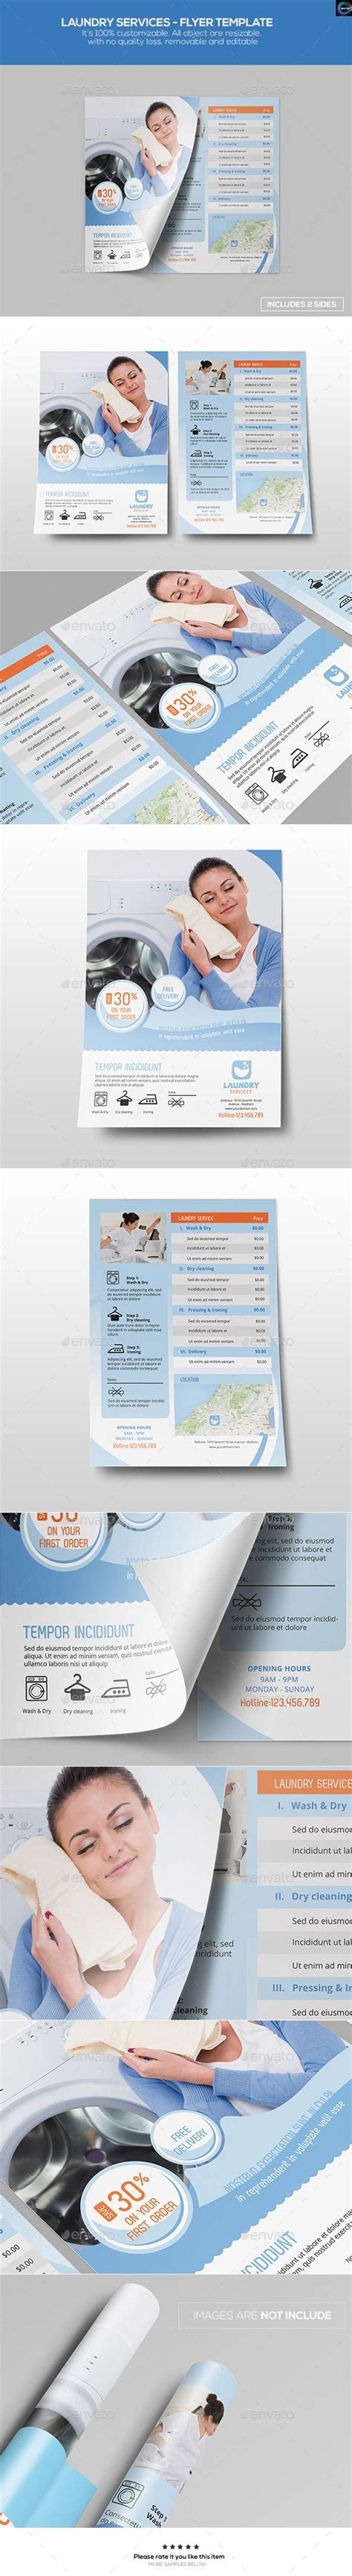 laundry flyers templates laundry services flyer template laundry service flyer